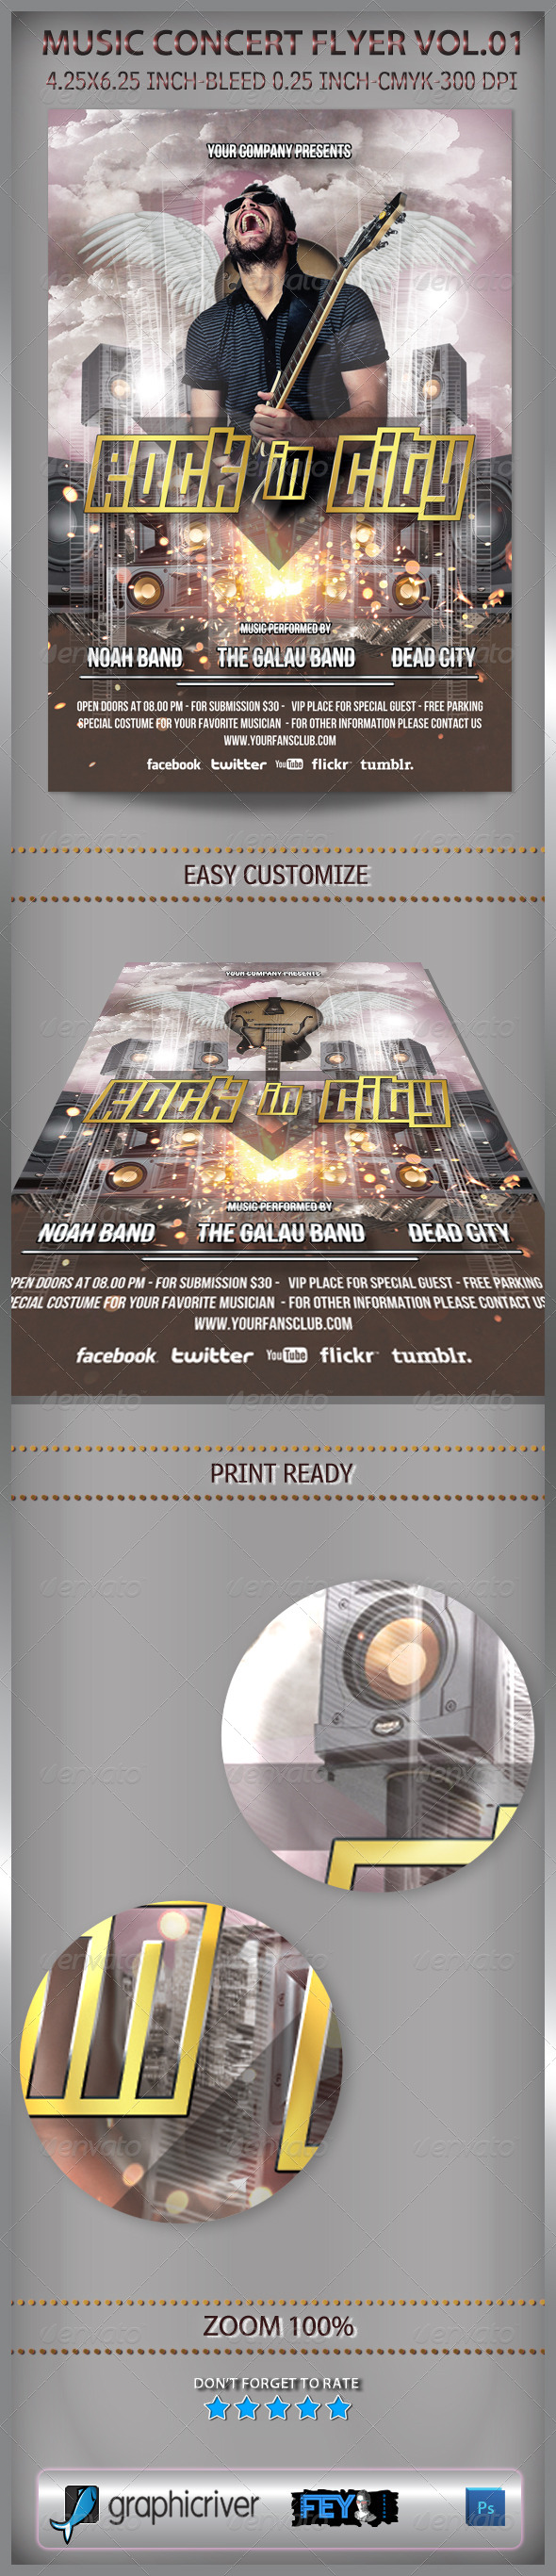 GraphicRiver Music Concert Flyer Vol.01 6621836